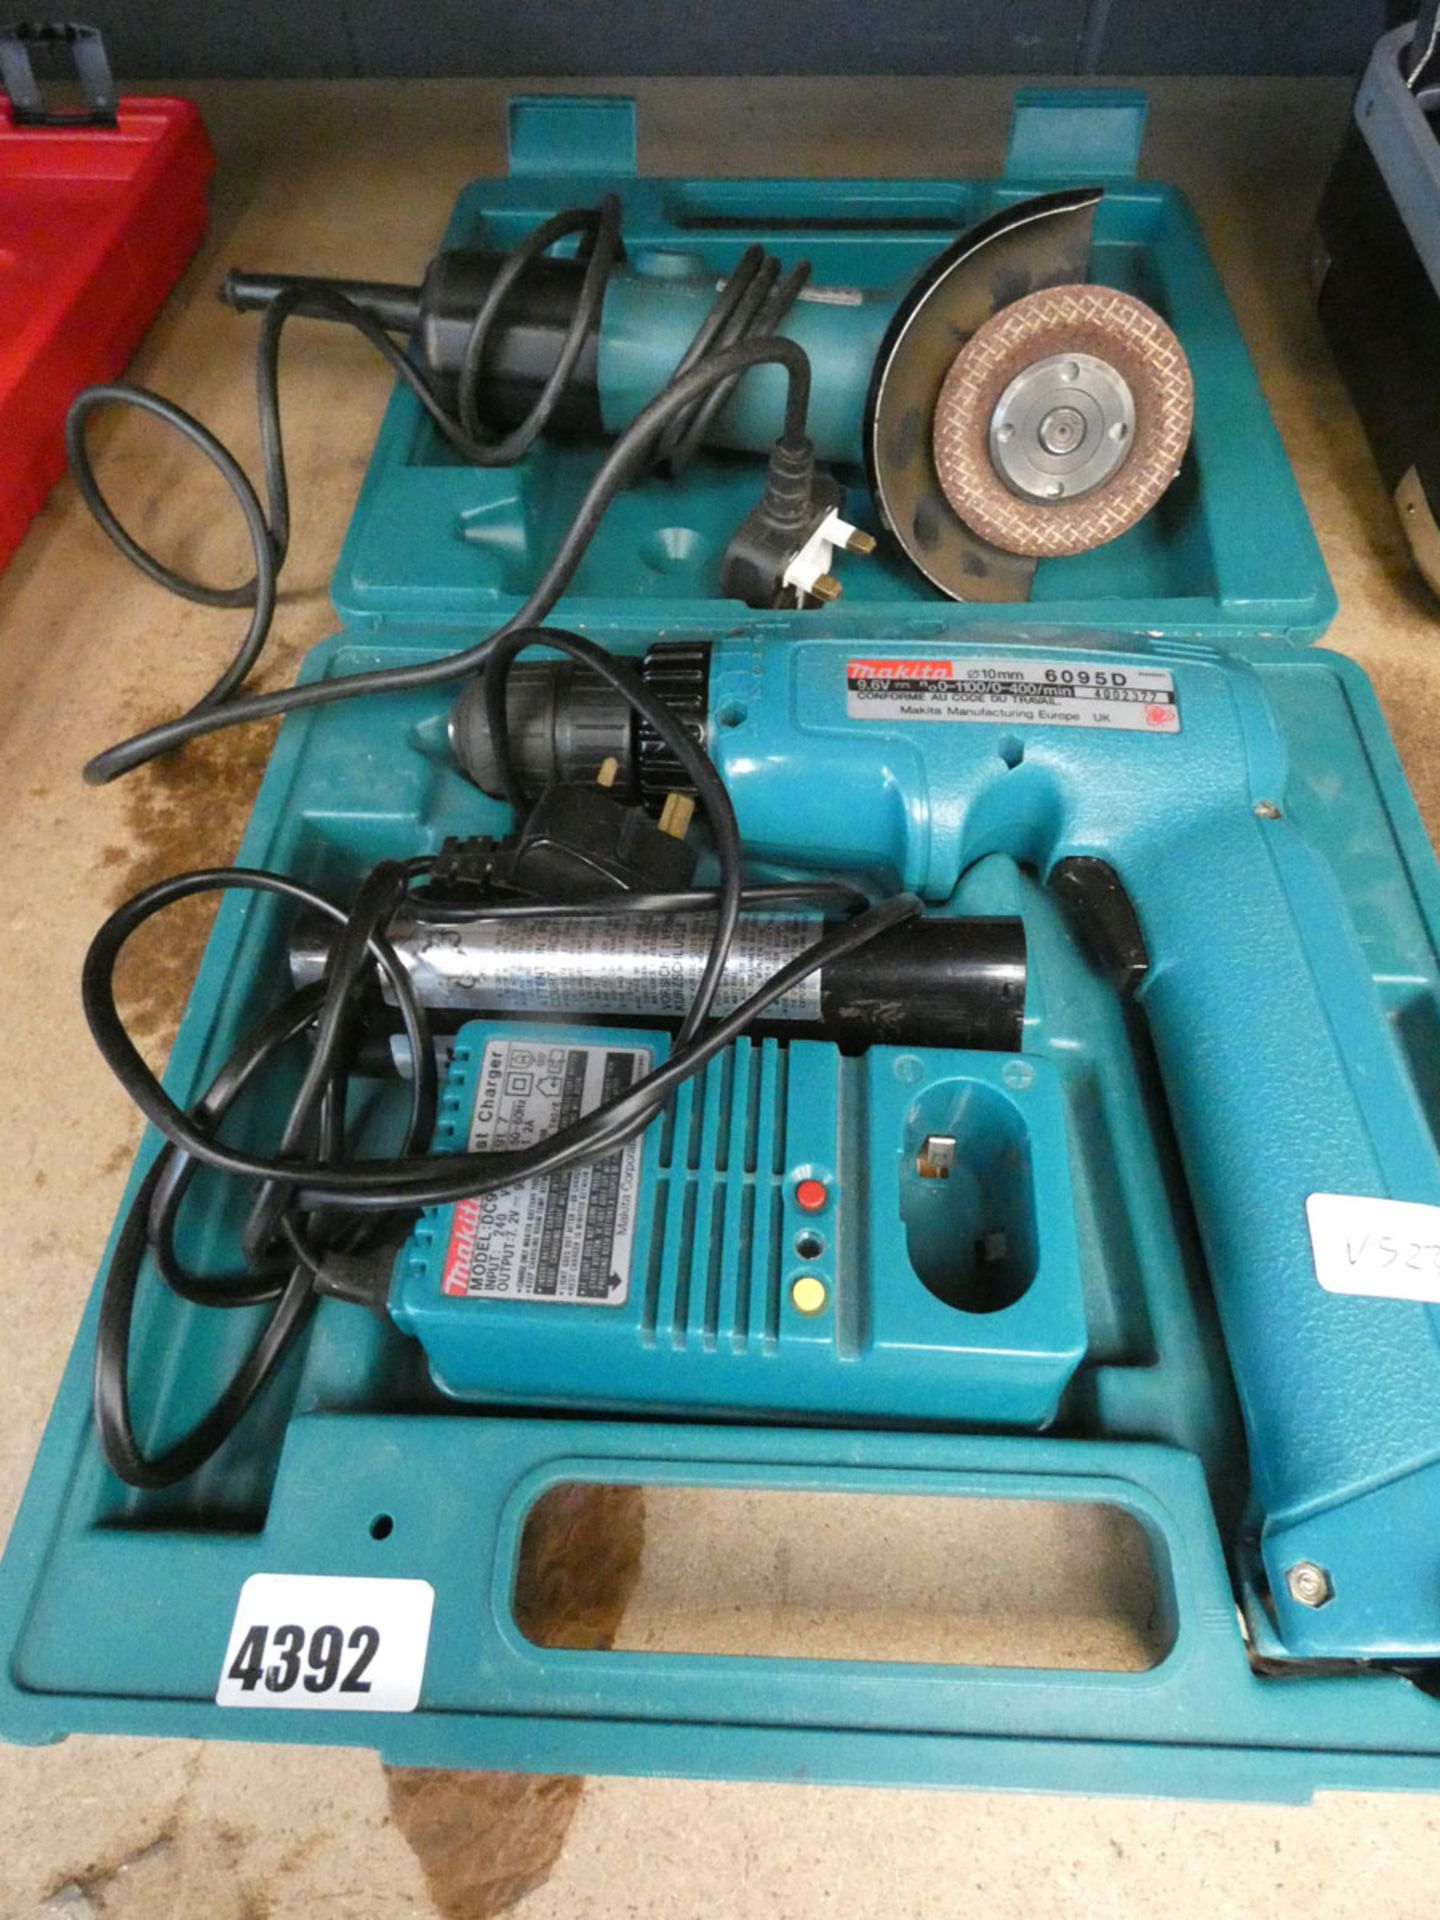 4663 - Makita battery drill with 2 batteries and charger and a Makita angle grinder